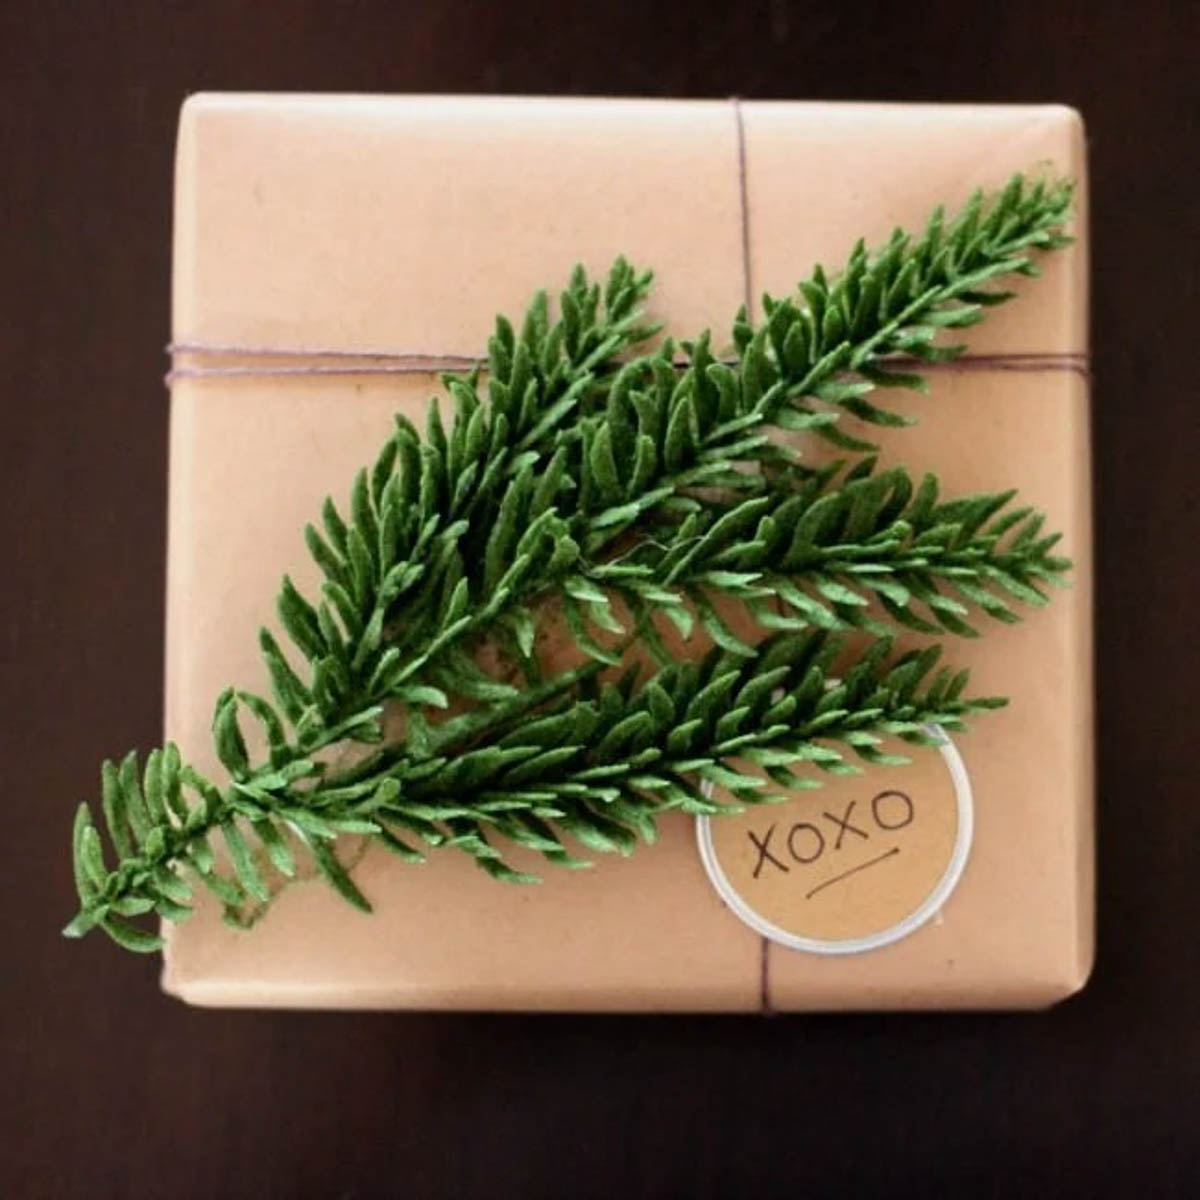 rust gift wrapped present with greenery and xoxo tag